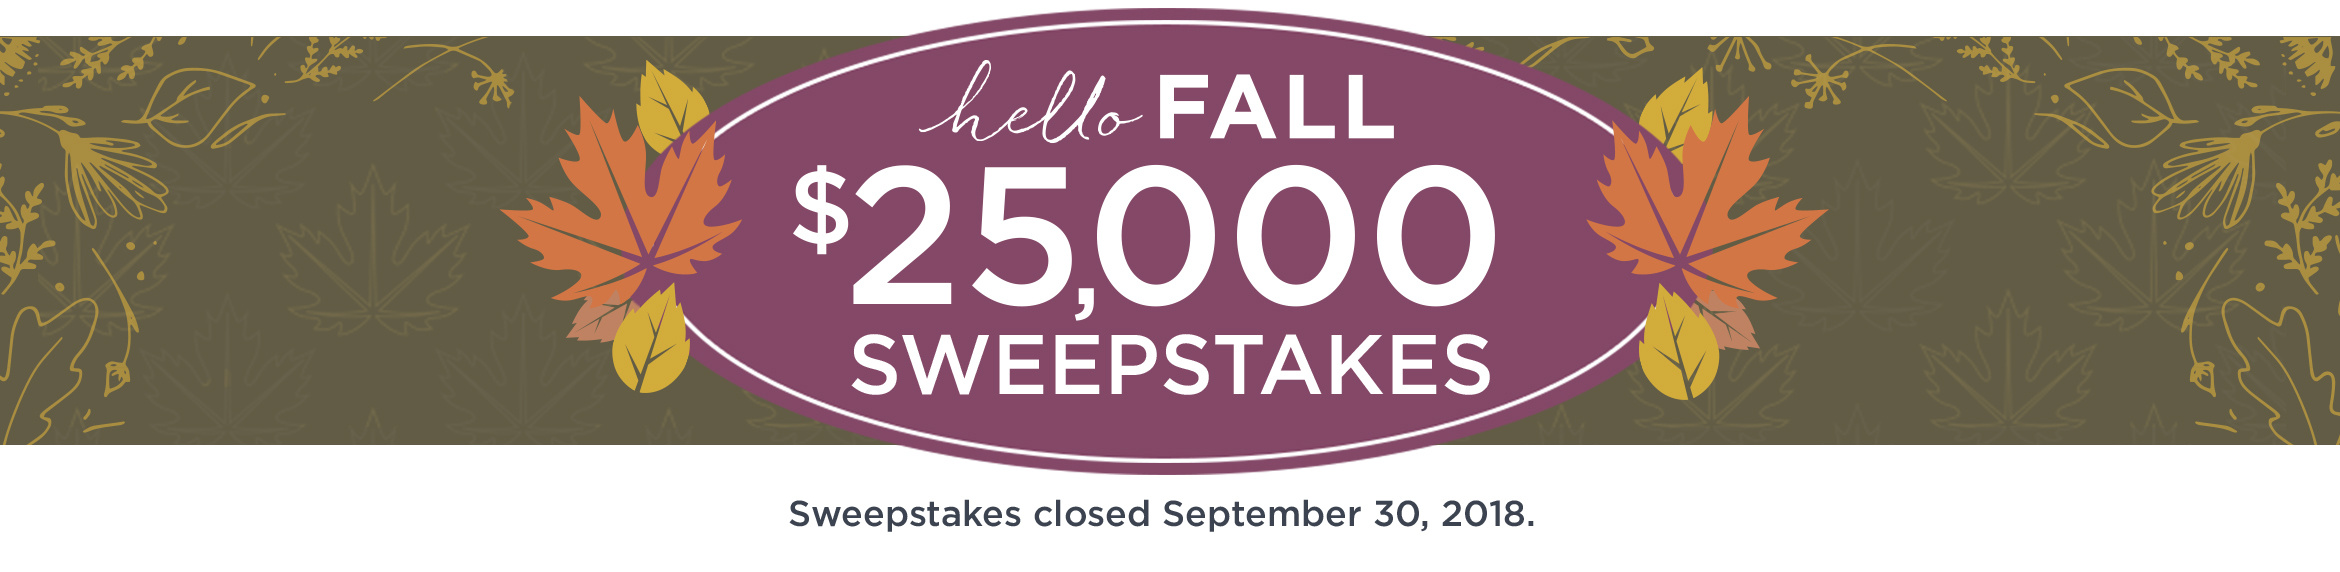 QVC Hello Fall Sweepstakes Winners. Sweepstakes closed September 30, 2018.